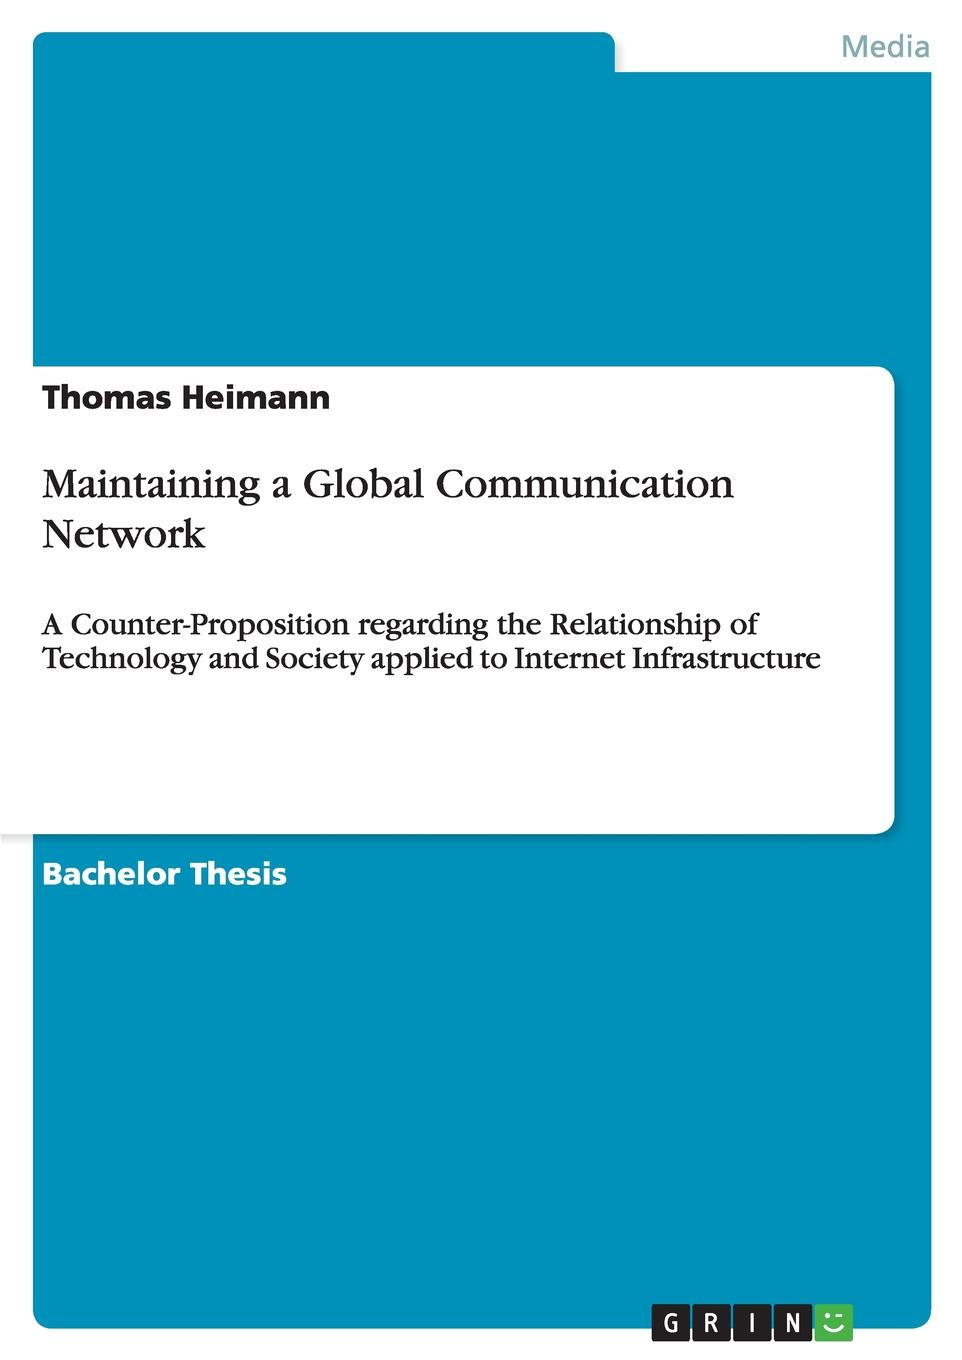 Thomas Heimann Maintaining a Global Communication Network alok kumar and adam scott governance social and physical infrastructure and development